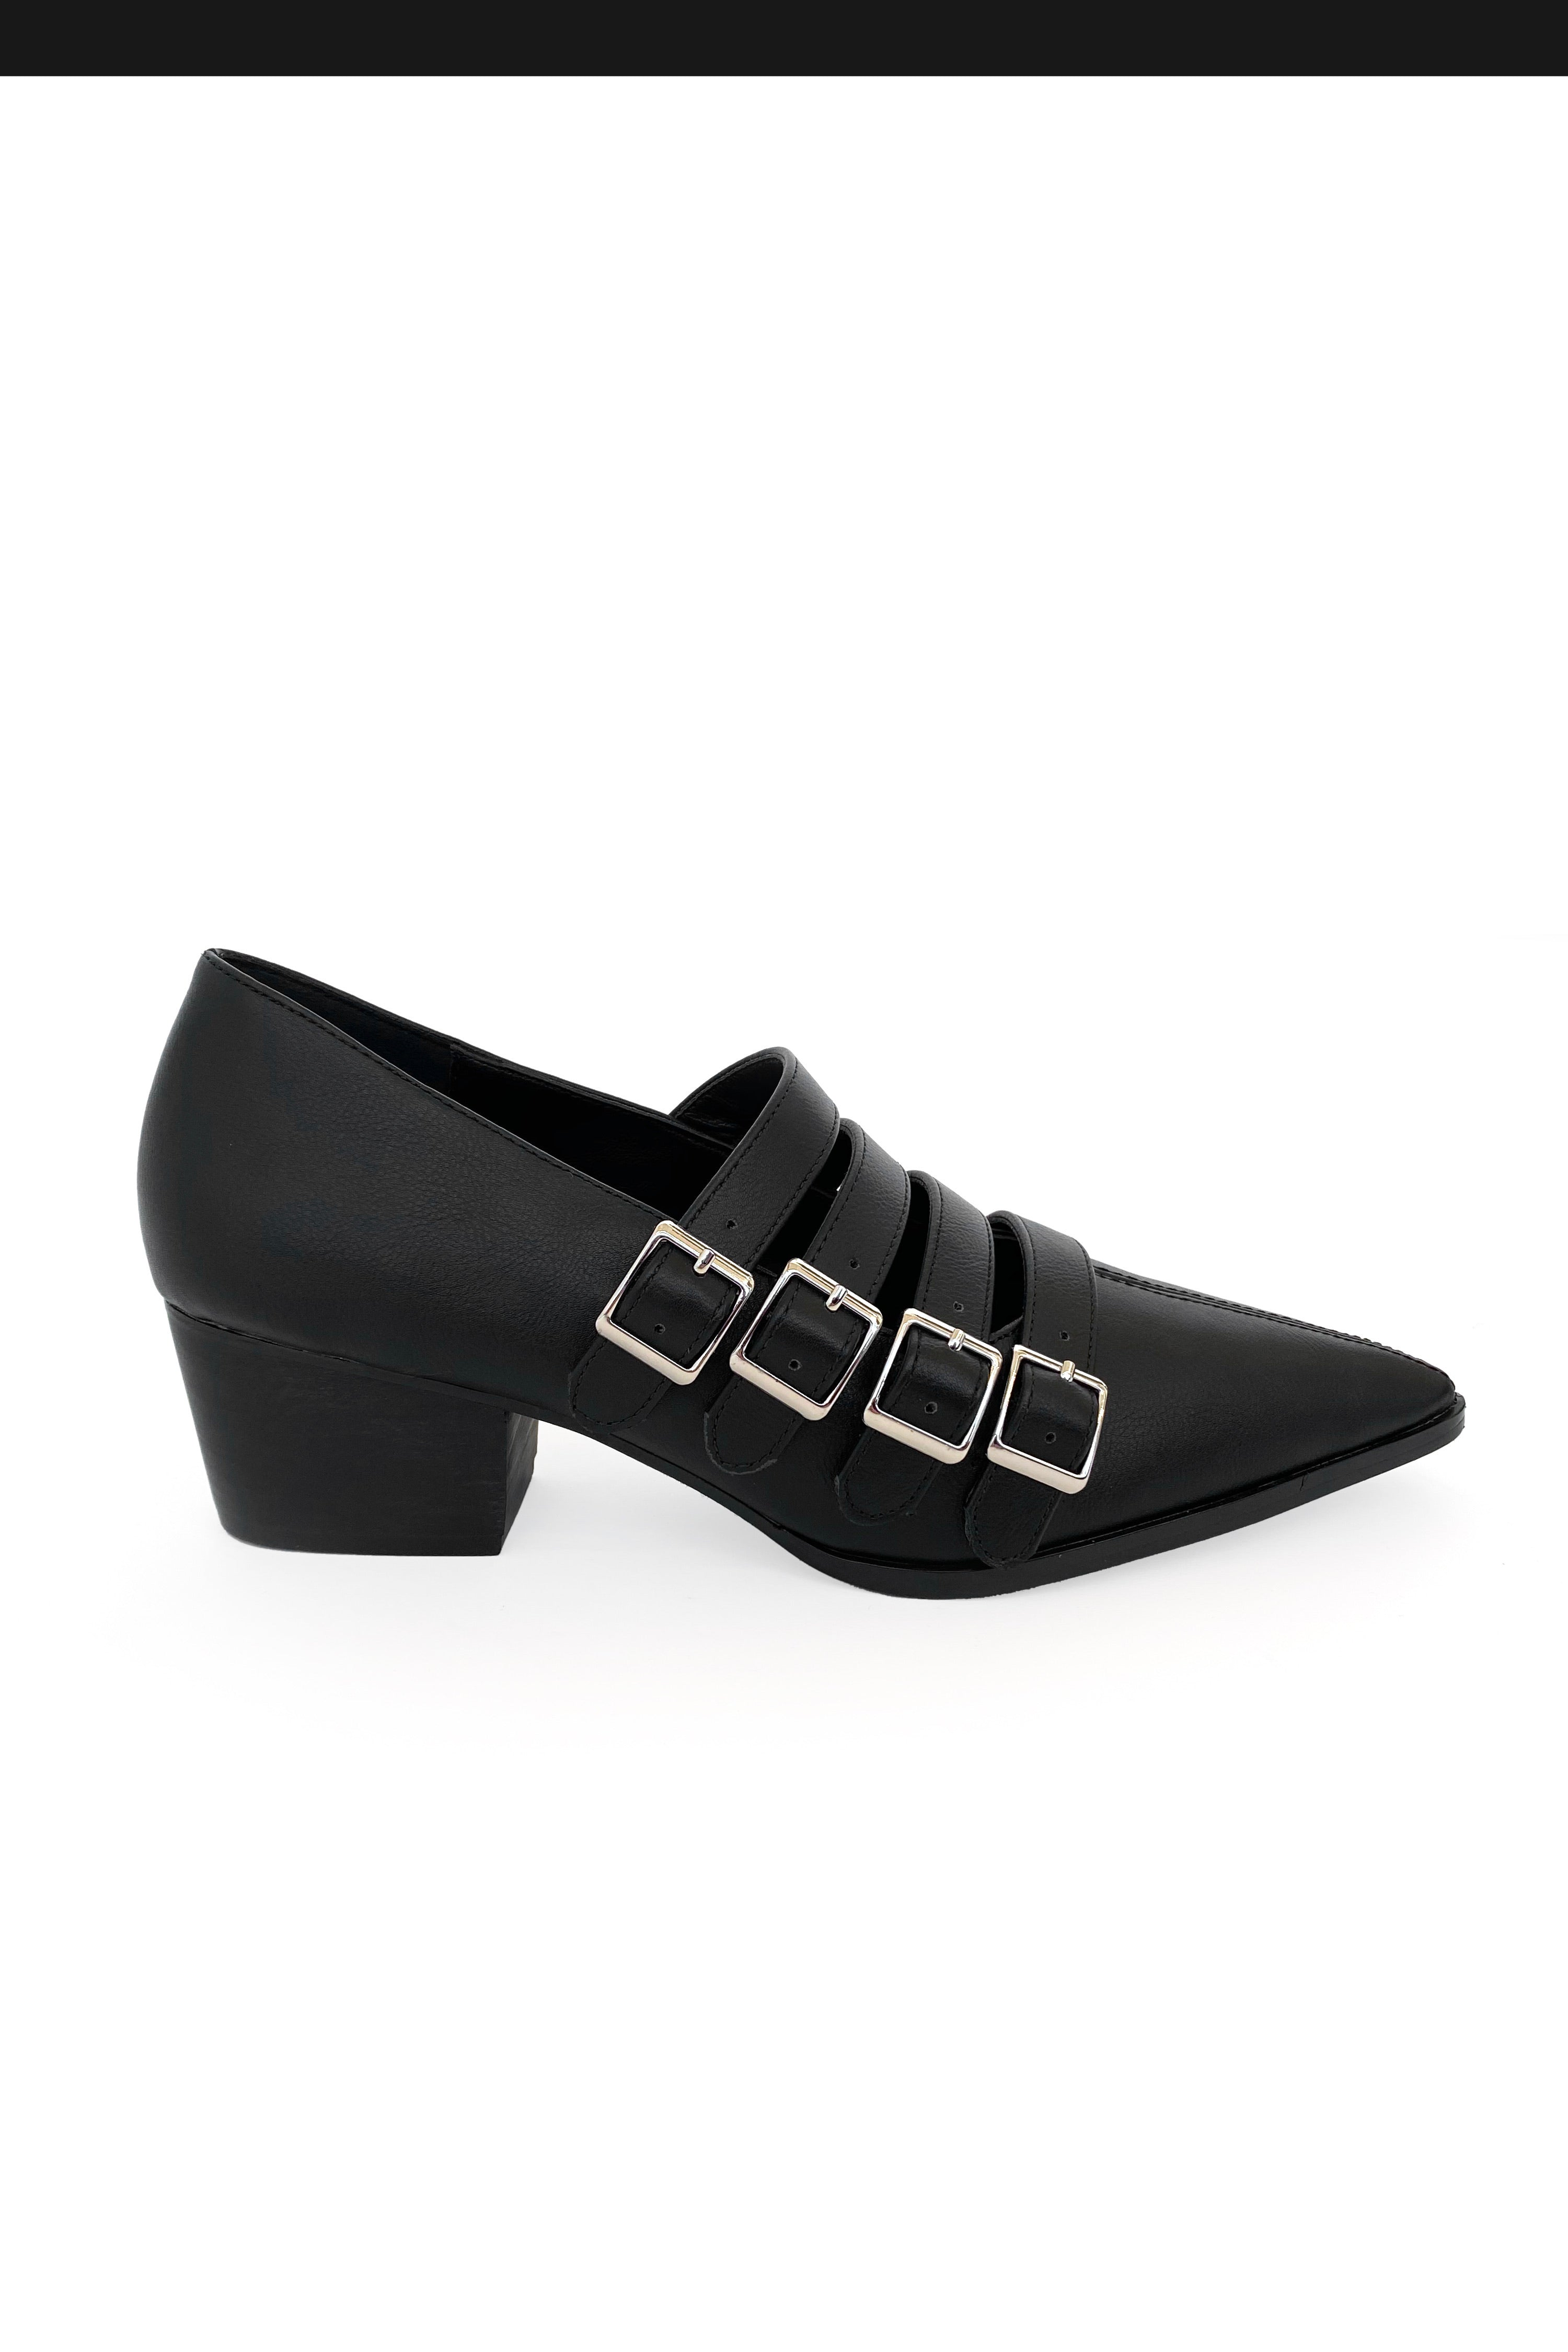 Eastwitch Coven Heels - size 6 & 11 left !